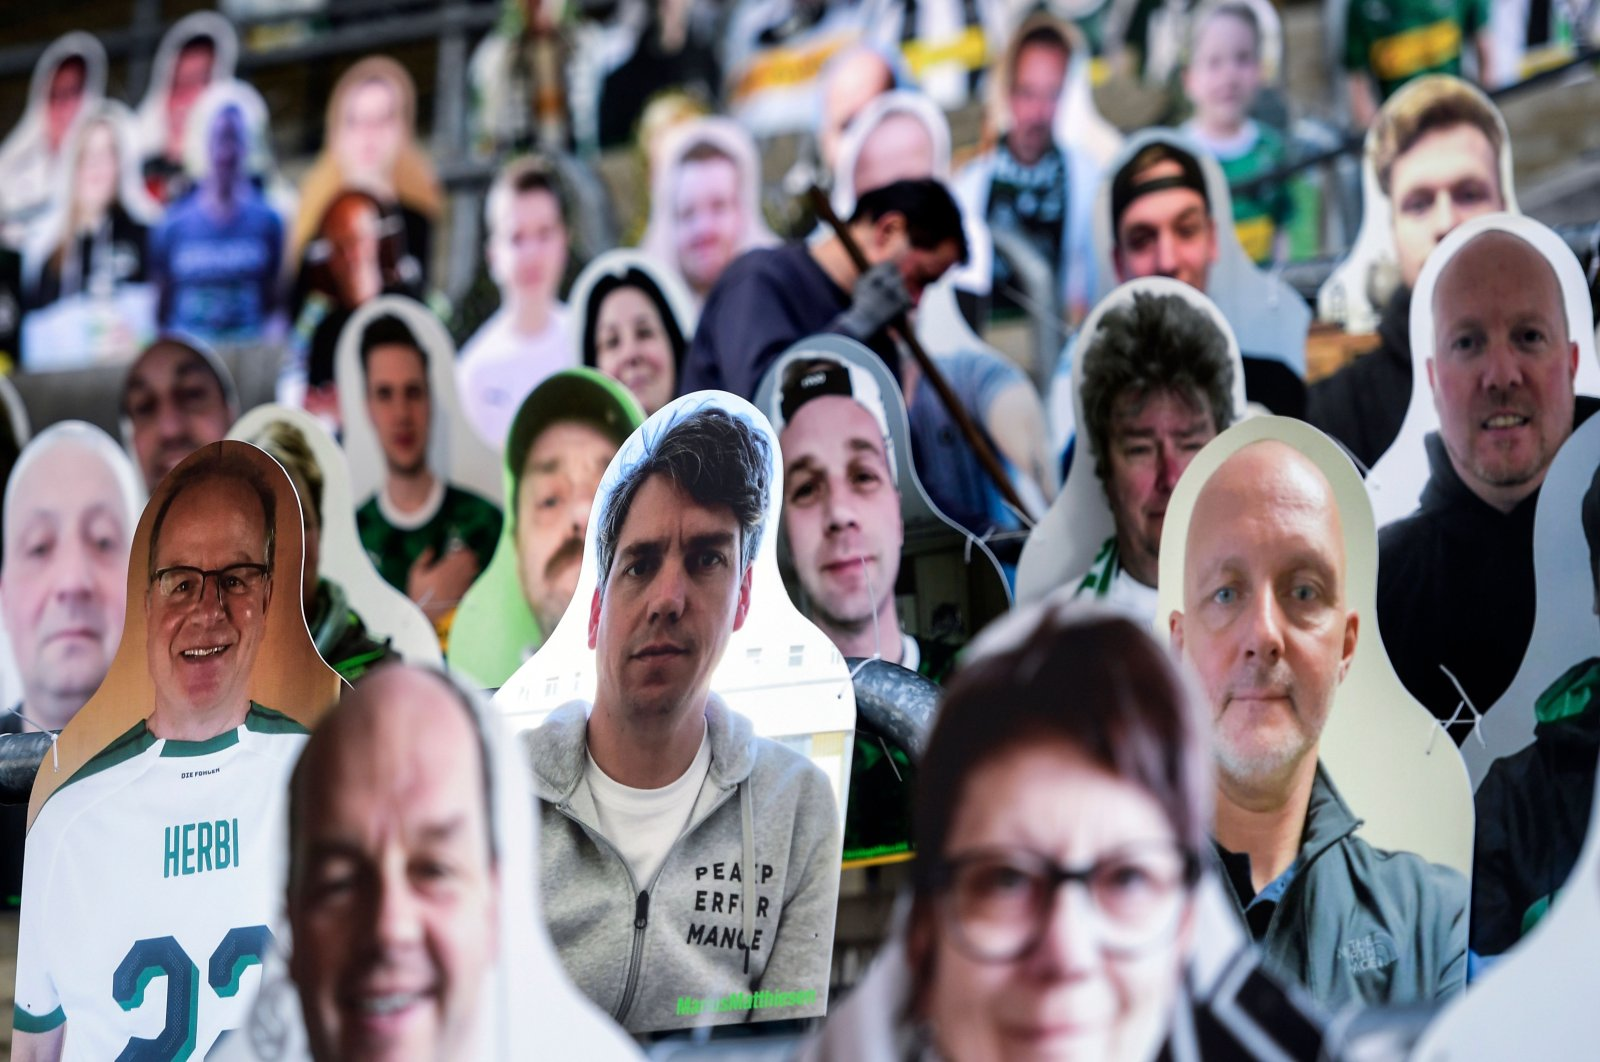 Cardboard cut-outs with portraits of Borussia Moenchengladbach's supporters are seen at the Borussia Park football stadium in Moenchengladbach, western Germany, amid the novel coronavirus COVID-19 pandemic, April 16, 2020. (AFP Photo)